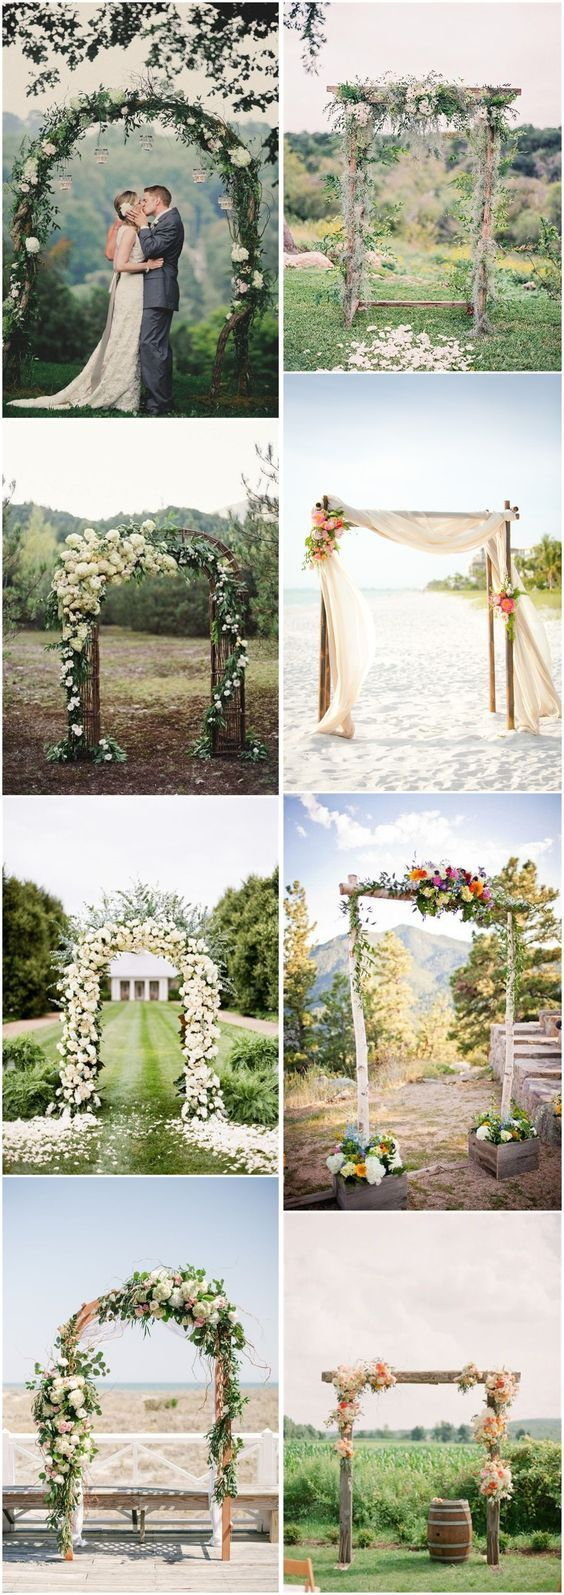 best wedding flowers images on pinterest wedding ideas arch